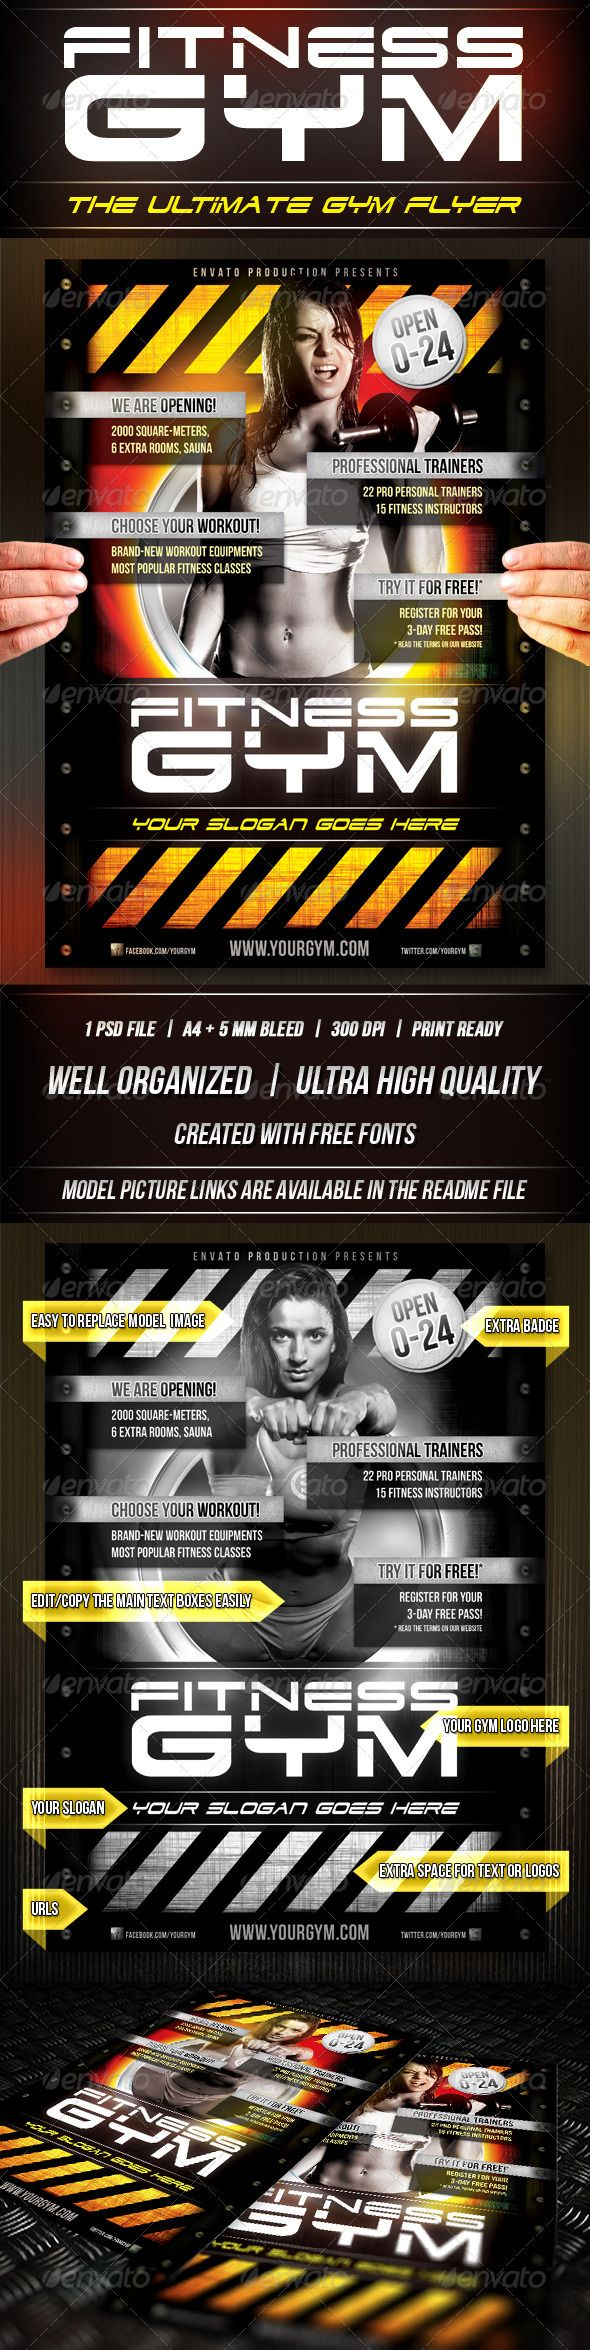 17 best images about gym advertisement business fitness gym flyer template